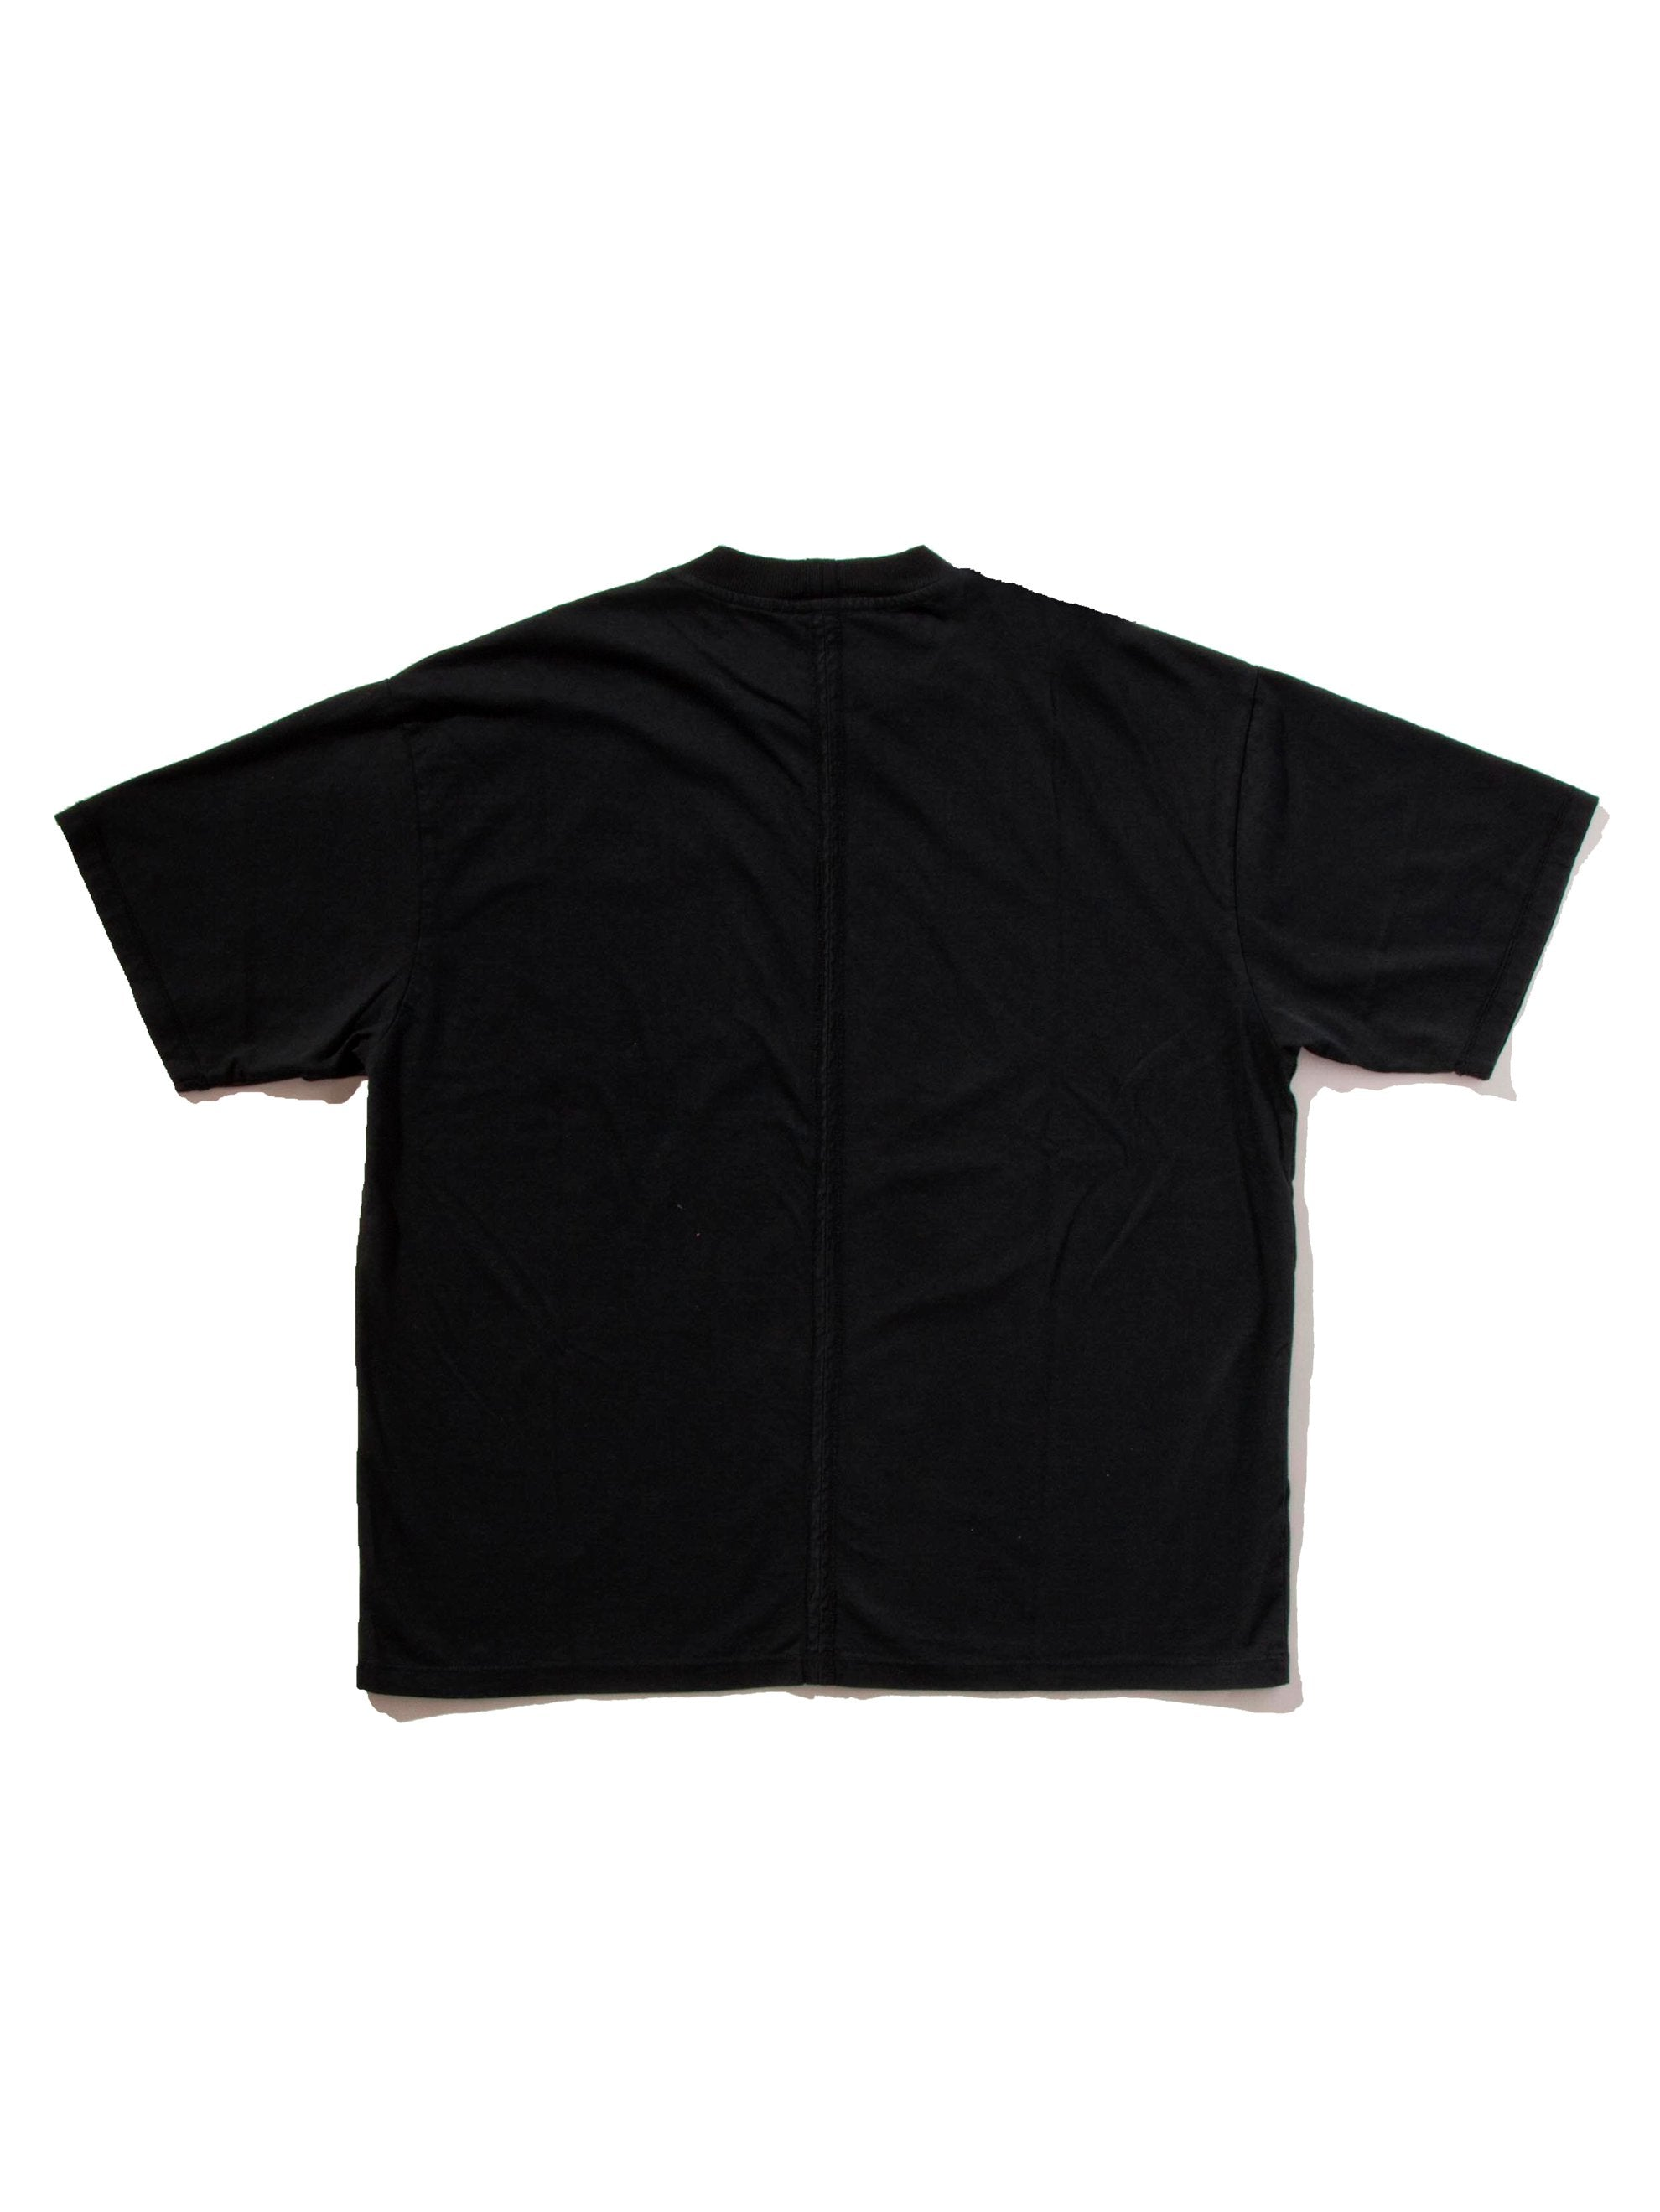 Jersey Cuts T-Shirt (Patch)